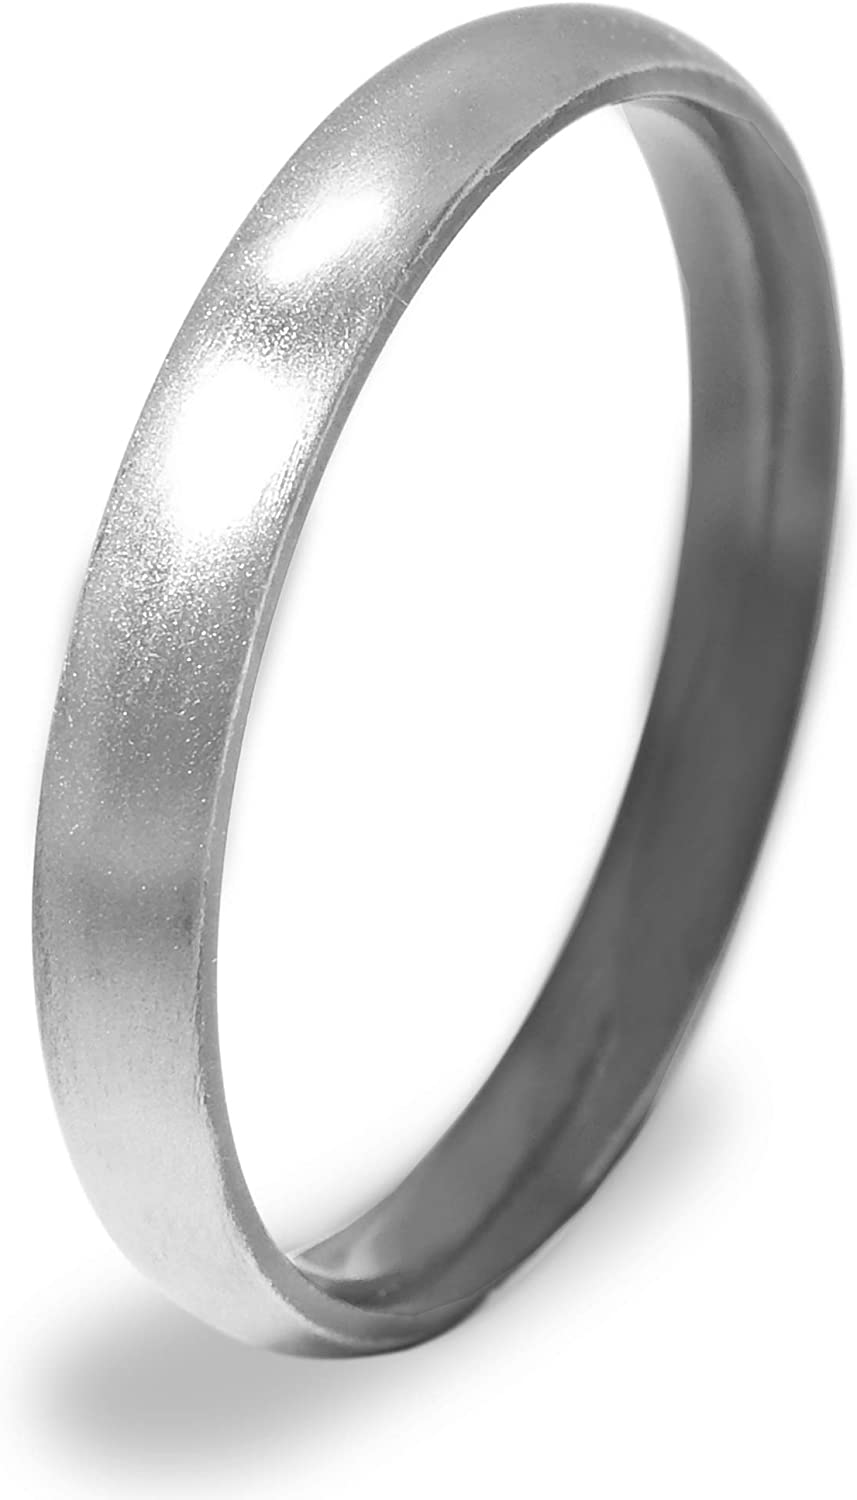 Everstone Women Titanium Ring Dome Polished Anniversary Wedding Ring Blue 4mm Size 3.5-16.5